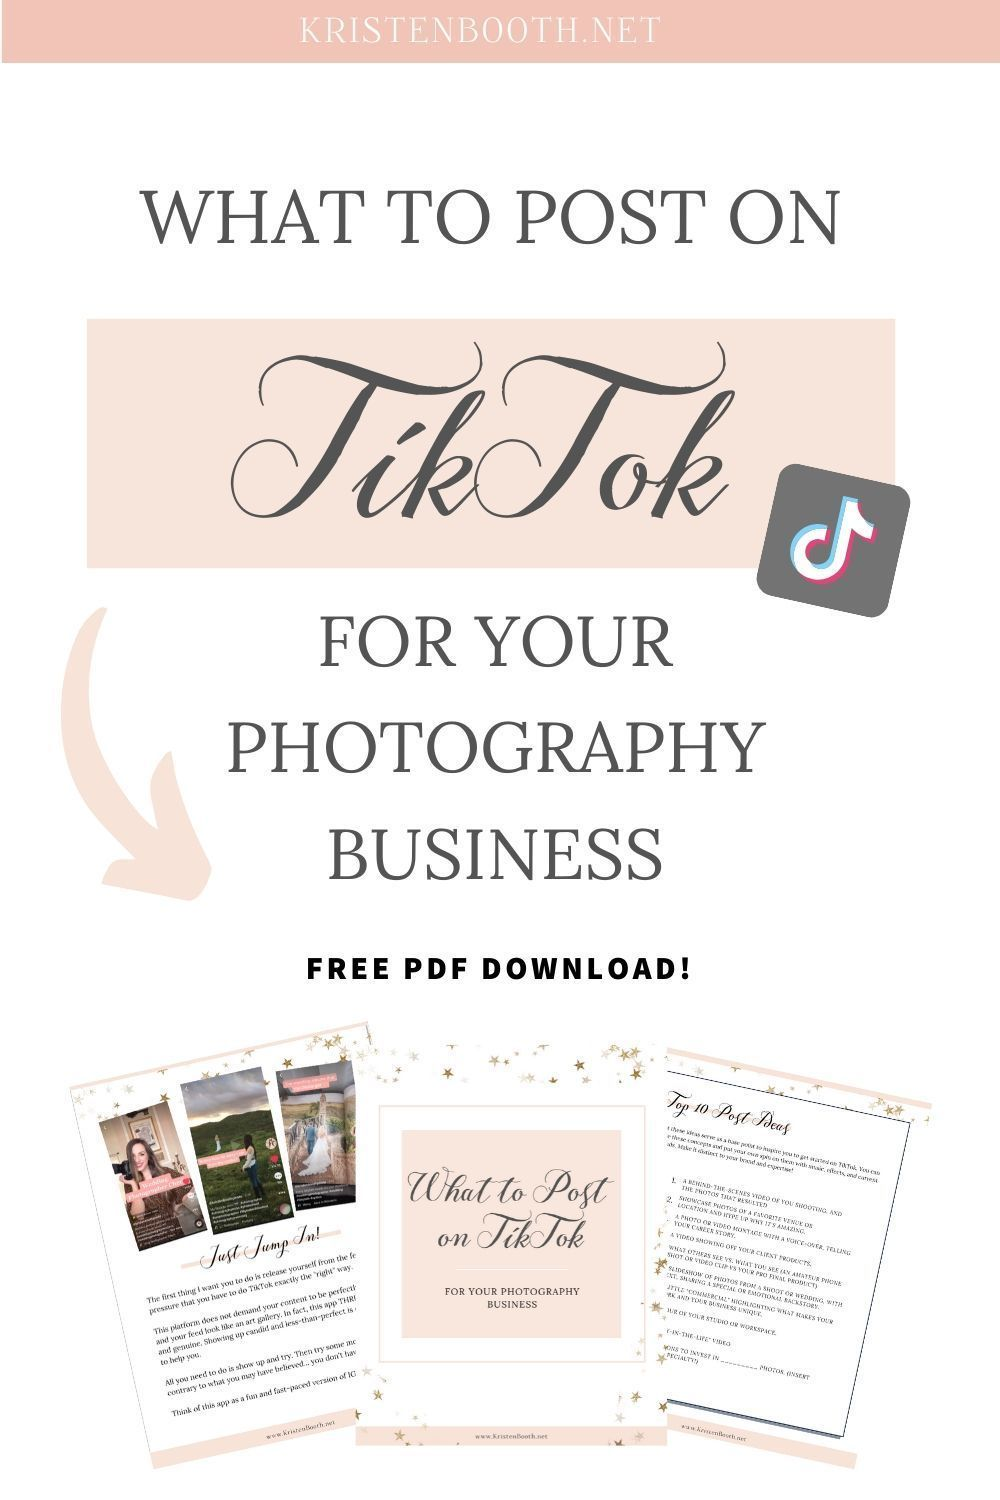 How To Use Tiktok For Business In 2020 Lindsay Scholz Studio Creative Studio For Woman Owned Businesses Creative Business Business Business Blog